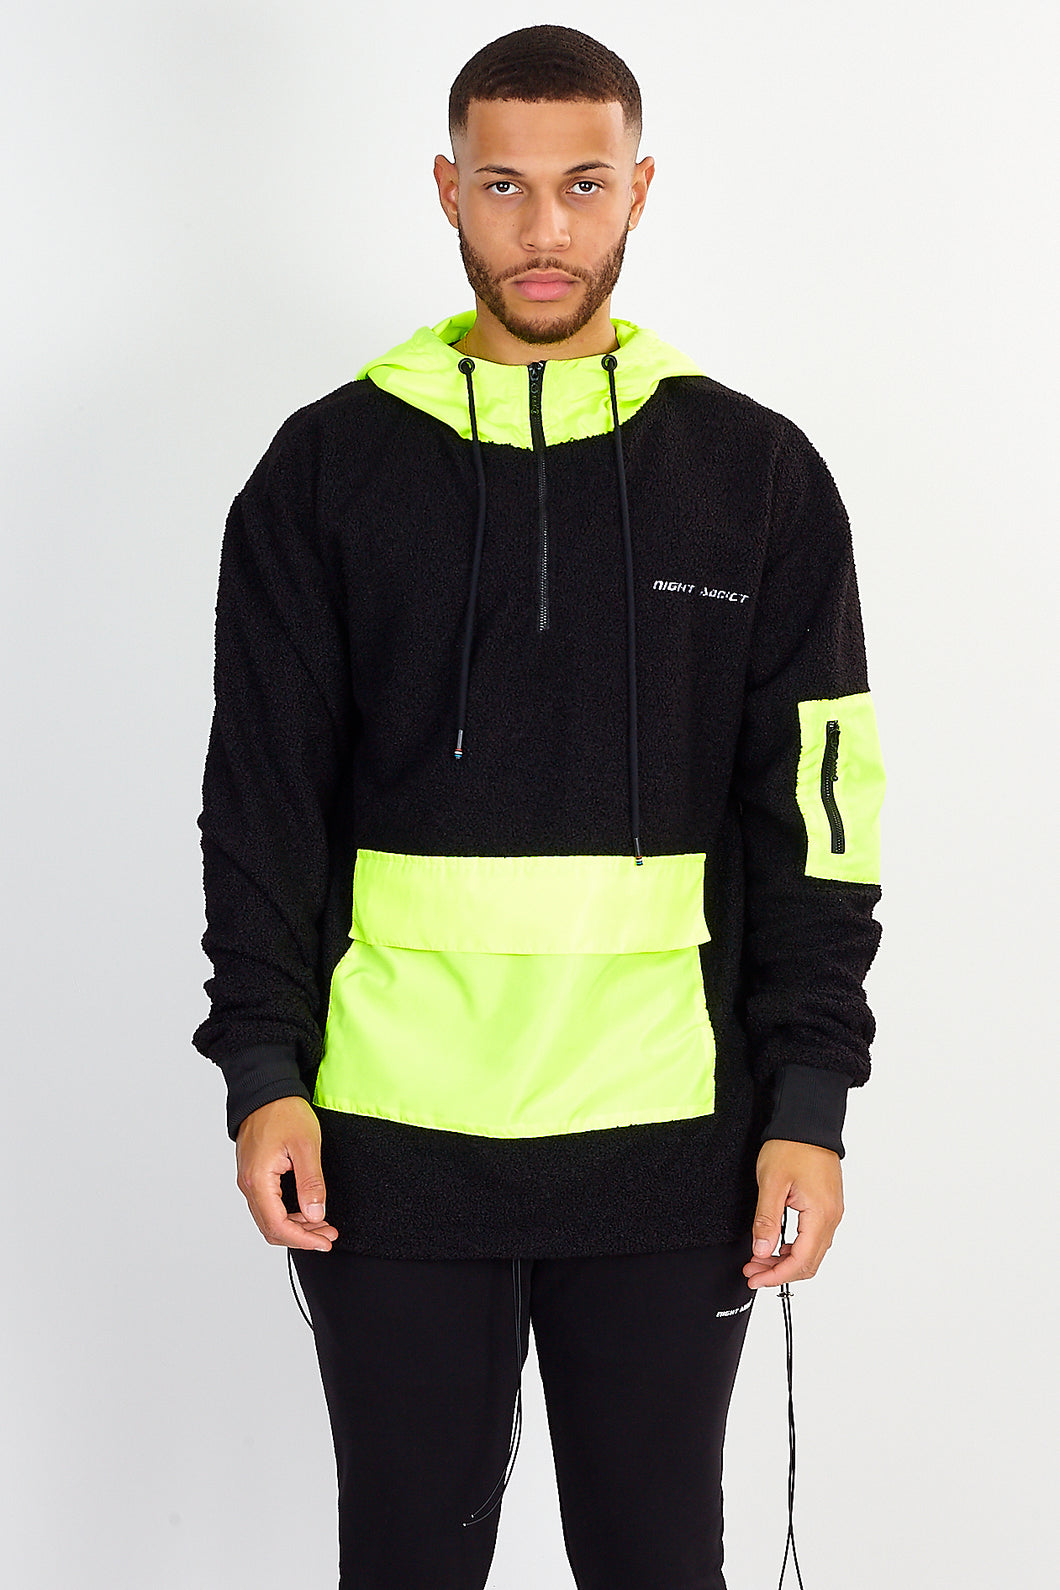 NIGHT ADDICT OVERHEAD BORG HOODIE – BLACK W/ NEON